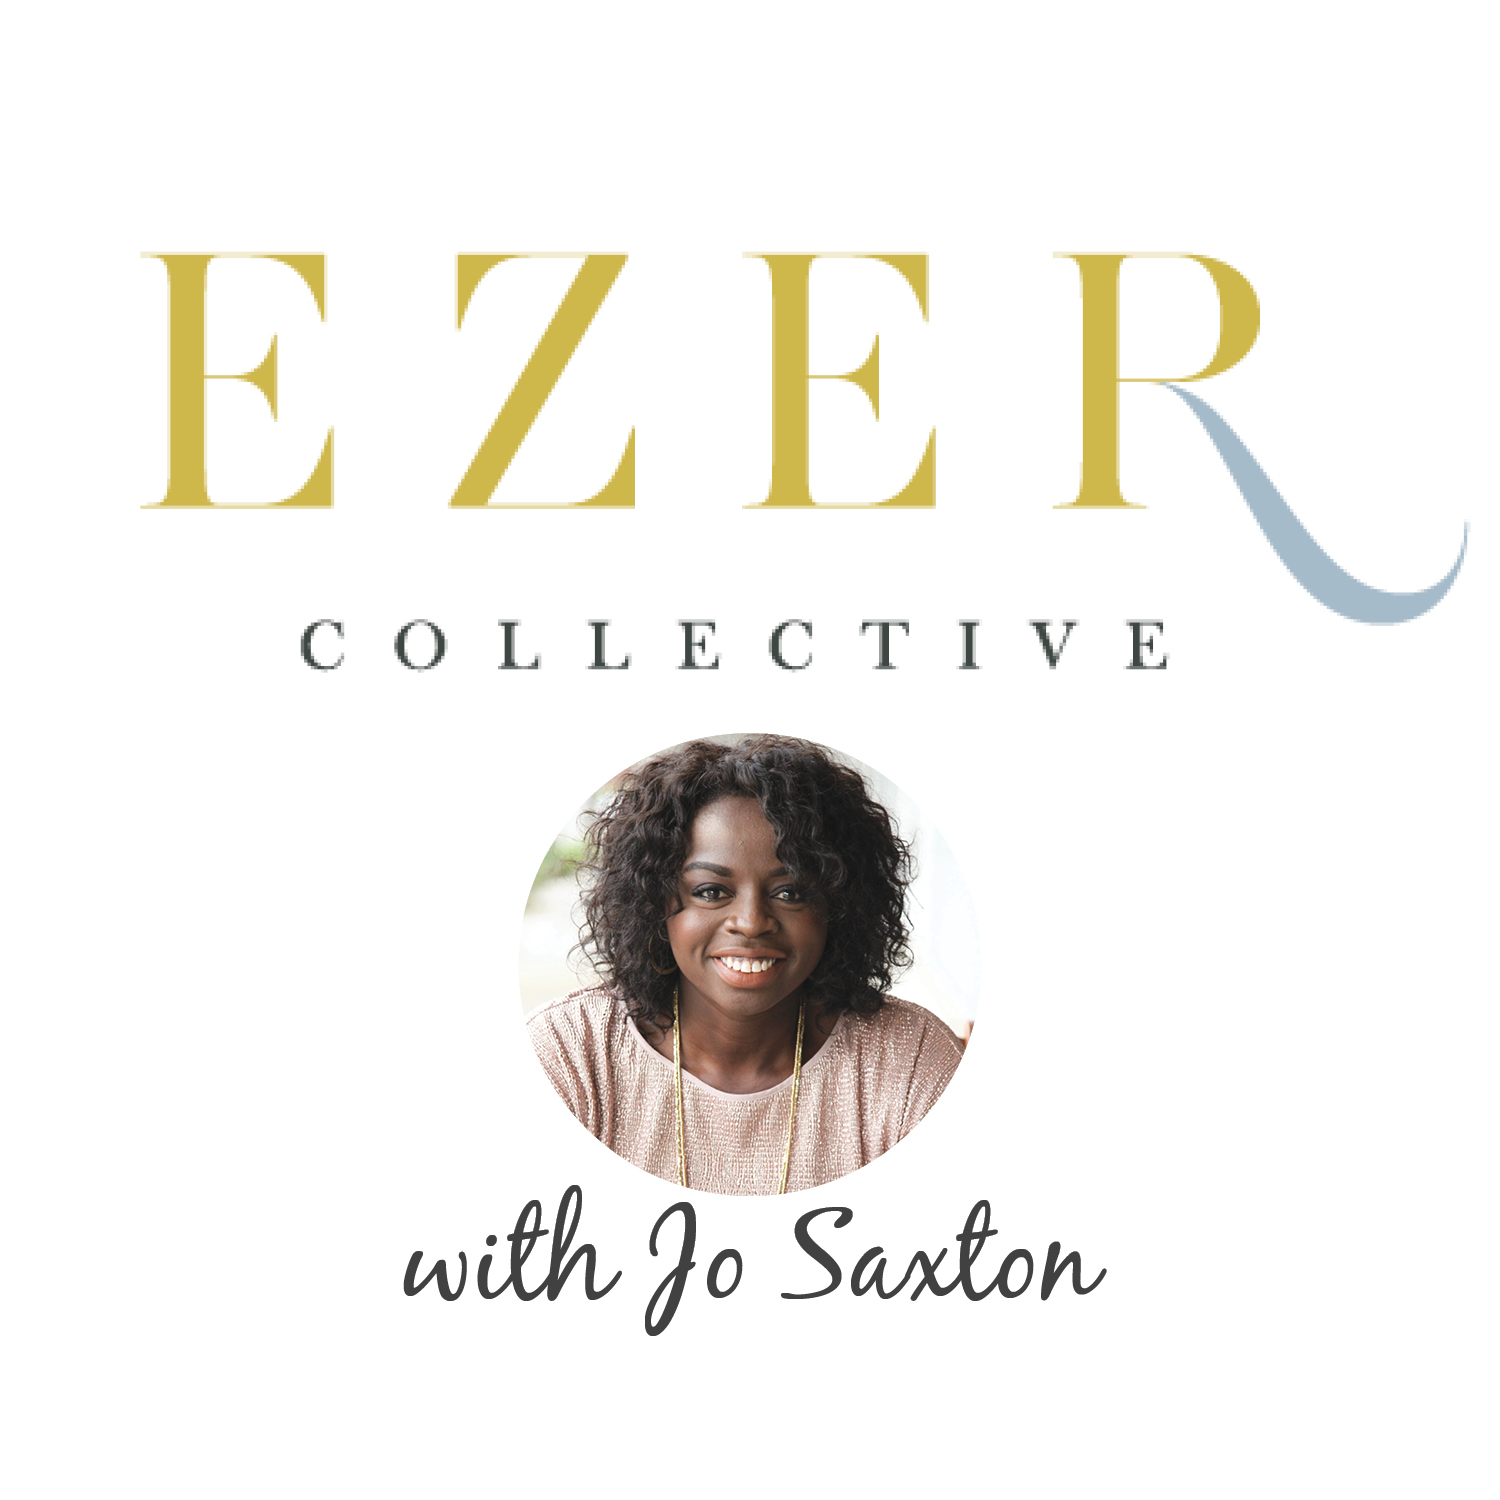 Through Ezer Collective, we aim to bring together women who lead. Women who lead in the corporate world, women who lead in the non profit space. Women who lead as creatives and entrepreneurs; women who lead in their local community or in the church. They lead in different spaces, in different ways – but share the call and potential to change the world. We want to encourage and empower them to be fully who they were created to be: ezers — women who run ahead and pull obstacles out of the way for others, women who rescue and protect others, women whose power strengthens others.